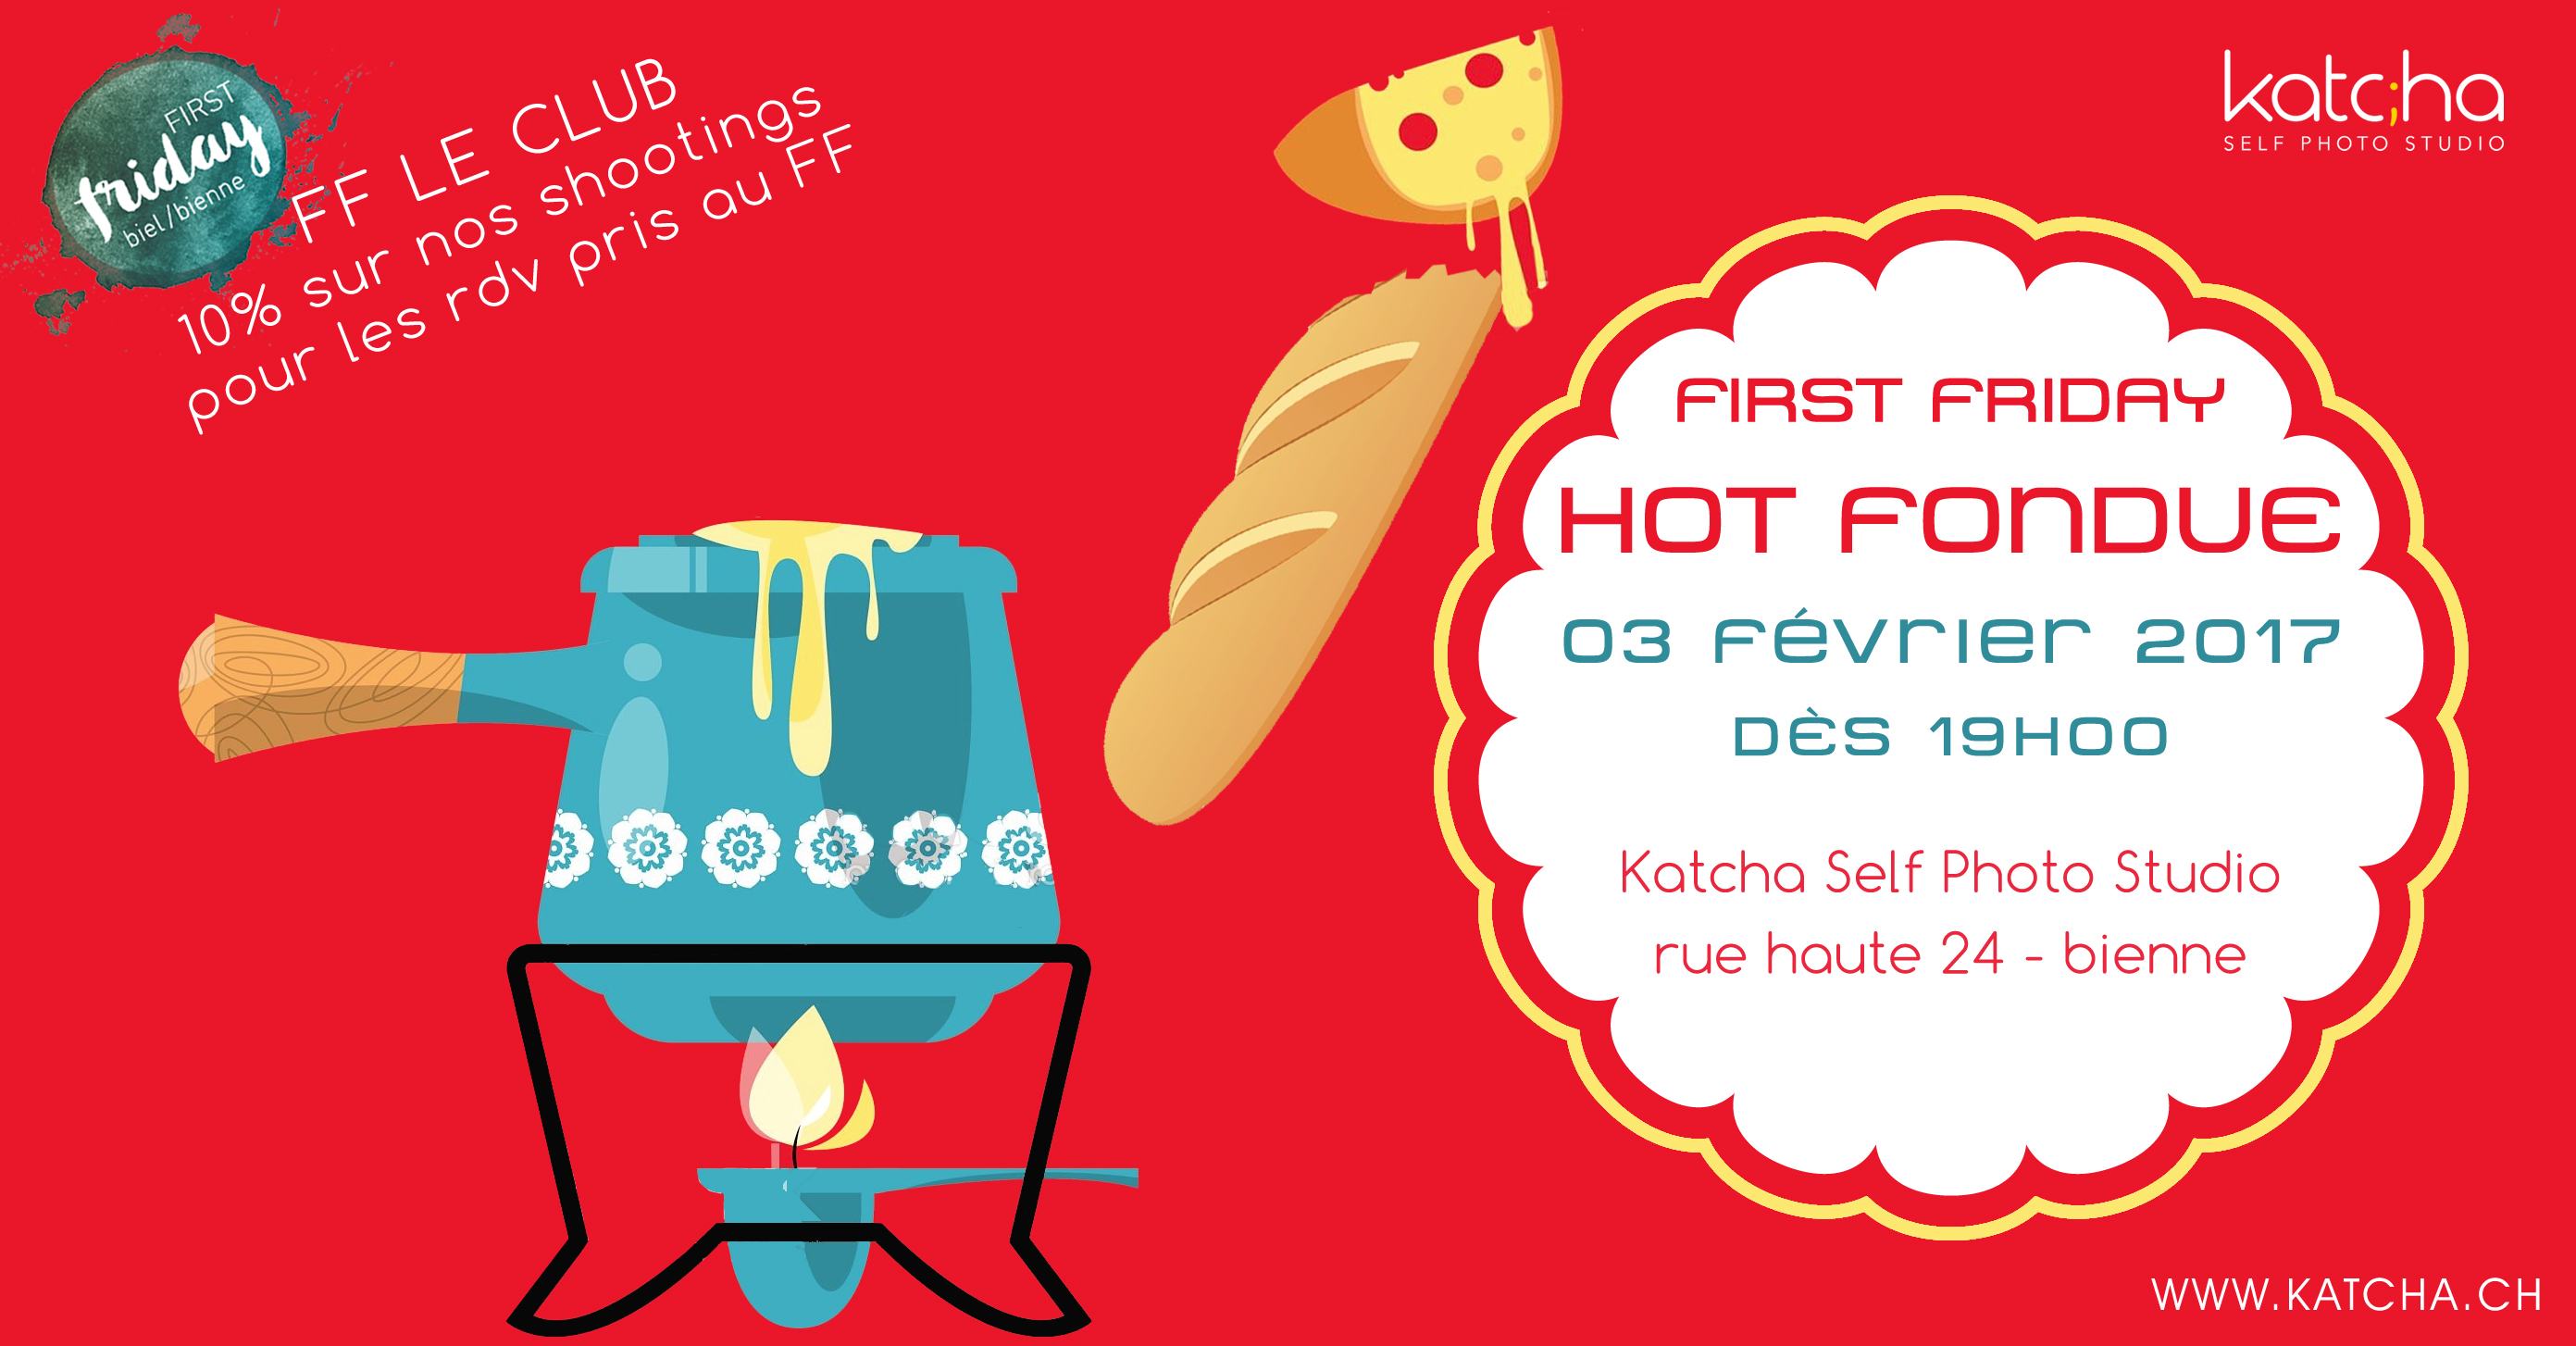 HOT FONDUE - First Friday février 2017